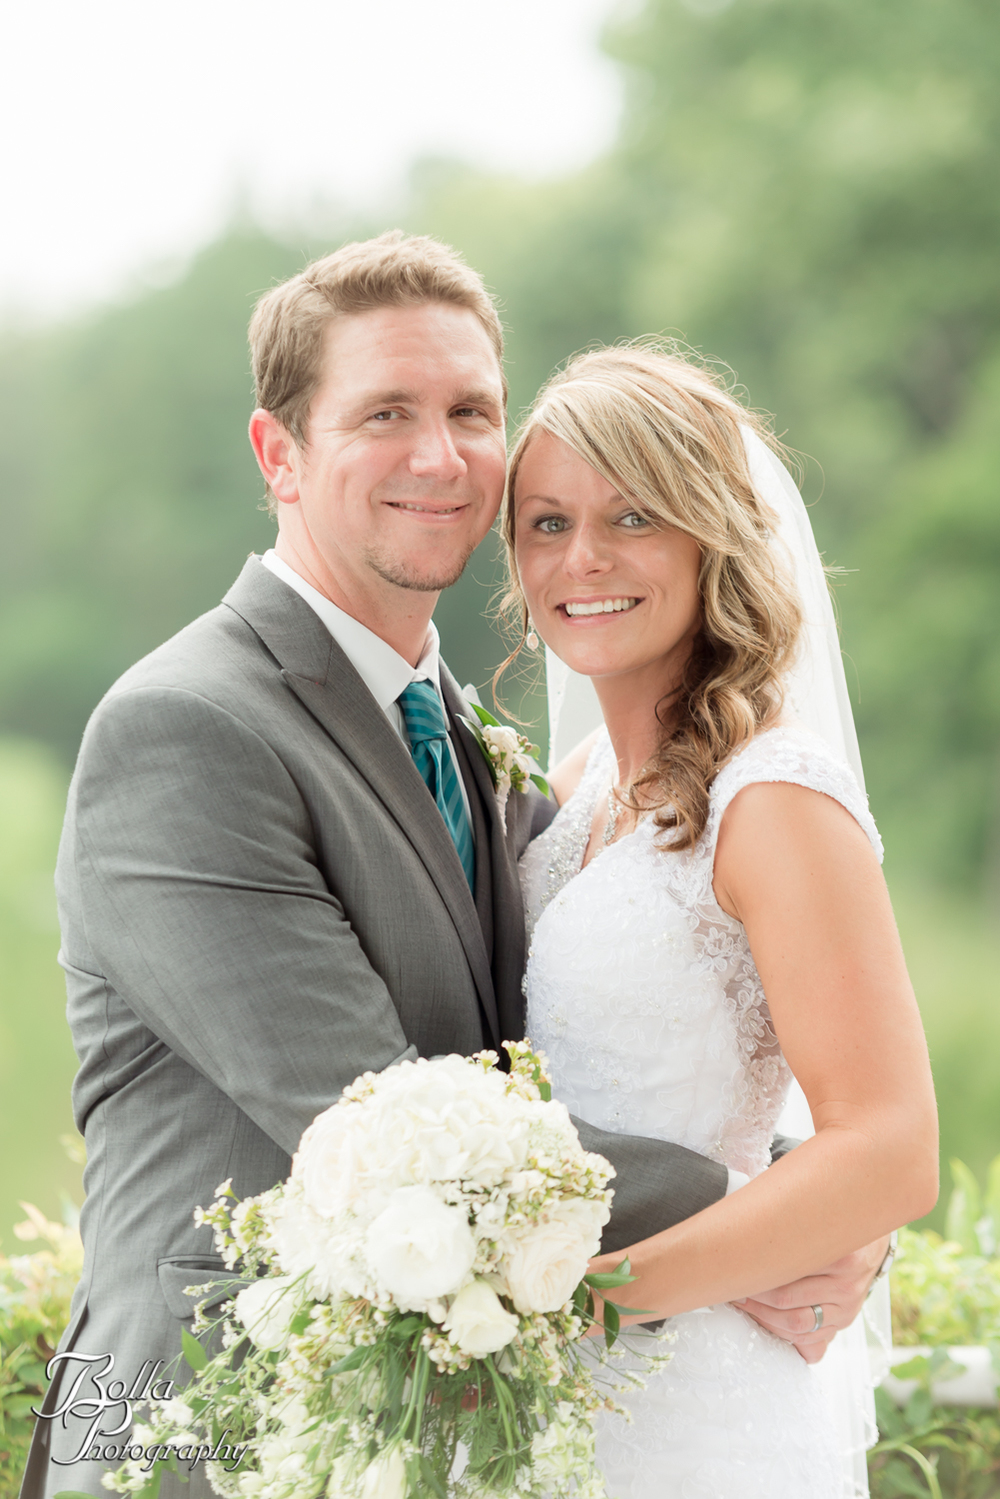 Bolla_Photography_St_Louis_wedding_photographer-0366.jpg